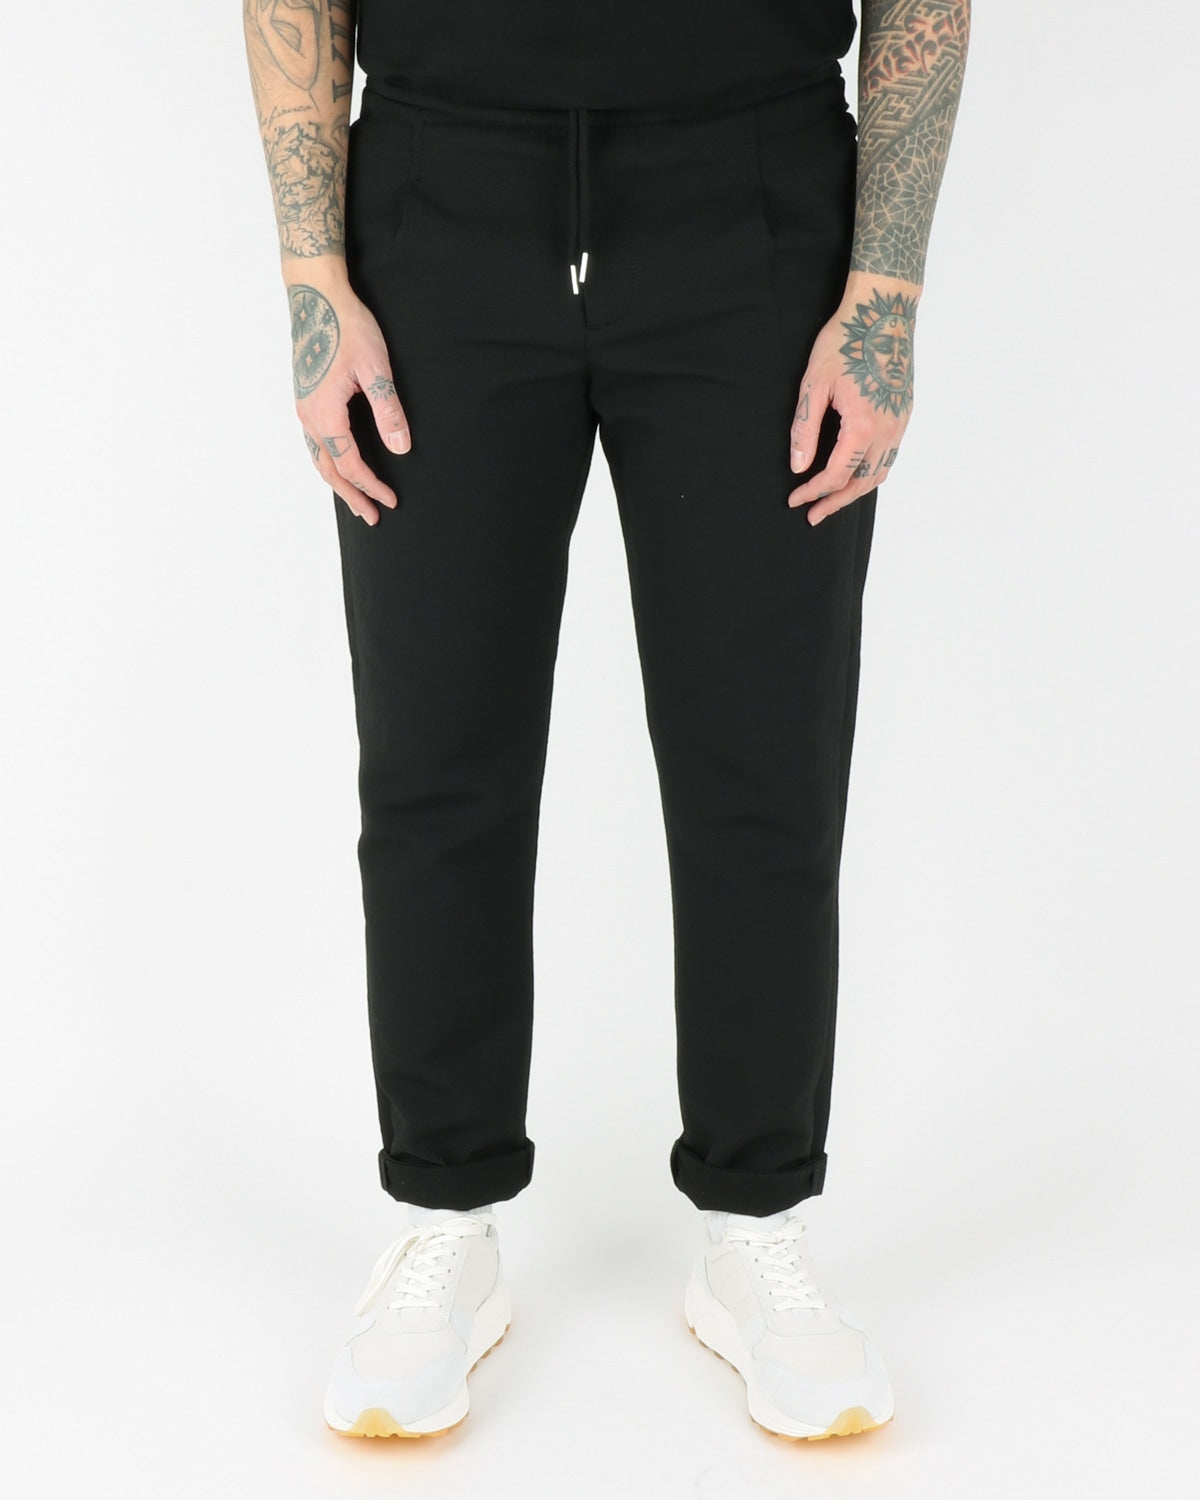 soulland_pino pants_black_view_1_3